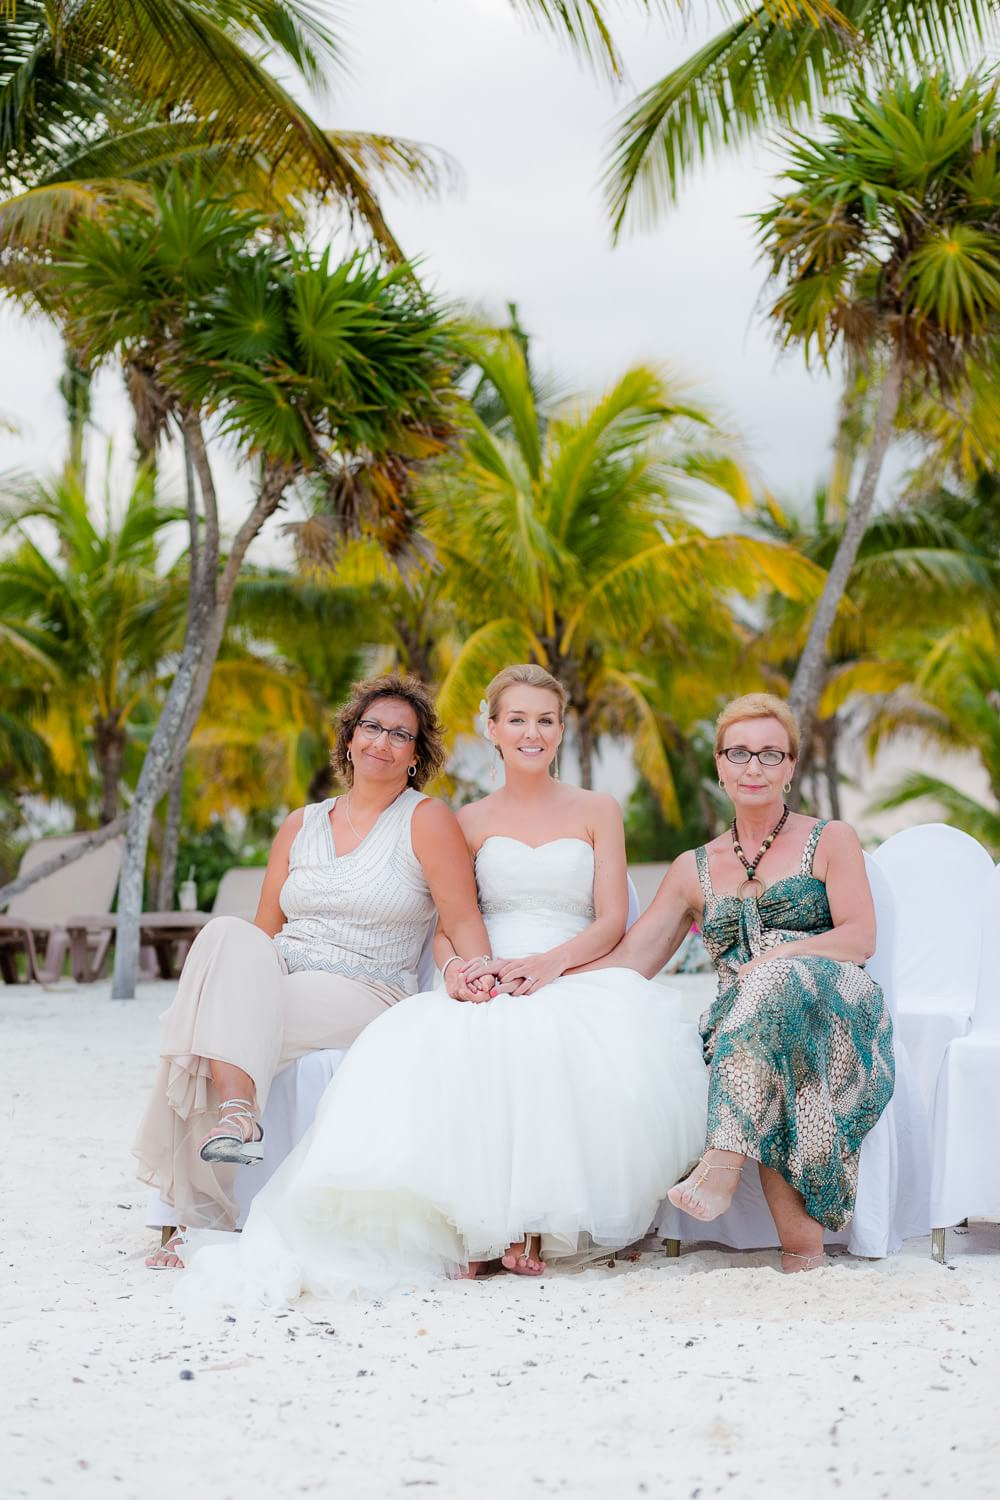 Mothers and Bride at Wedding in Mexico.